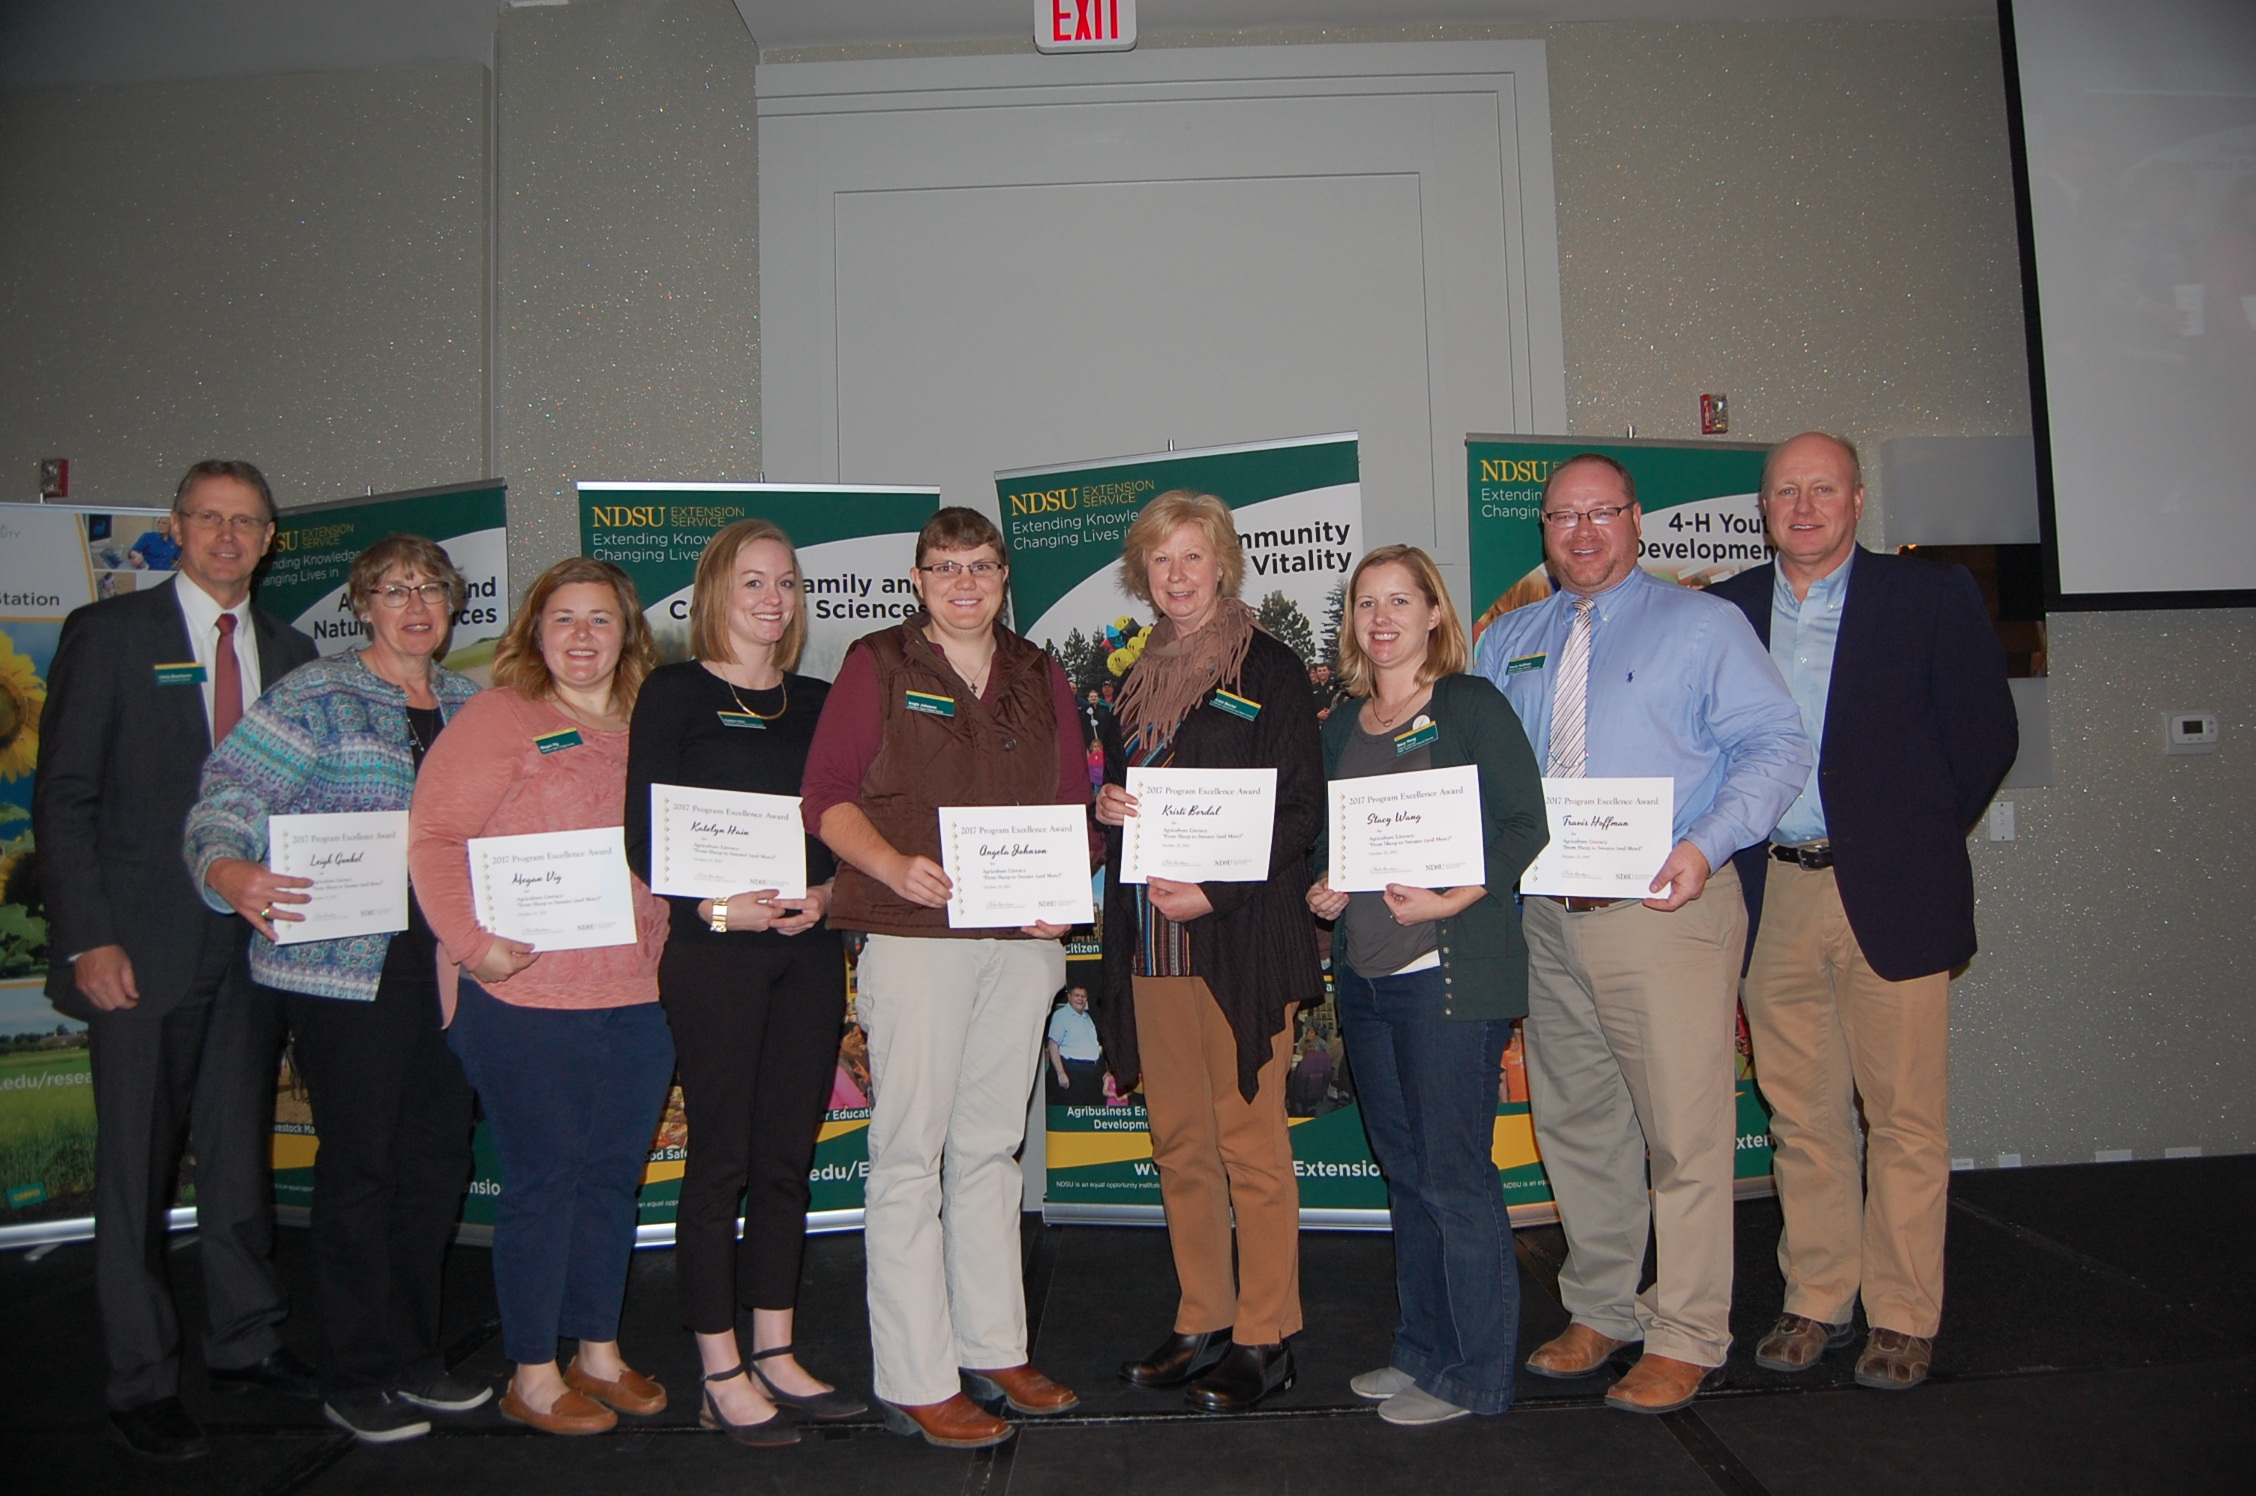 The Sheep to Sweater (and More) team receives a Program Excellence Award. Pictured are (from left): NDSU Extension Director Chris Boerboom; agent Leigh Gunkel, Griggs County; agent Megan Vig, Griggs County; agent Katelyn  Hain, Nelson County; agent Angie Johnson, Steele County; agent Kristi Berdal, Nelson County; Stacy Wang, Extension associate; Travis Hoffman, Extension sheep specialist; and Jim Murphy, Farm and Ranch Guide. (NDSU photo)